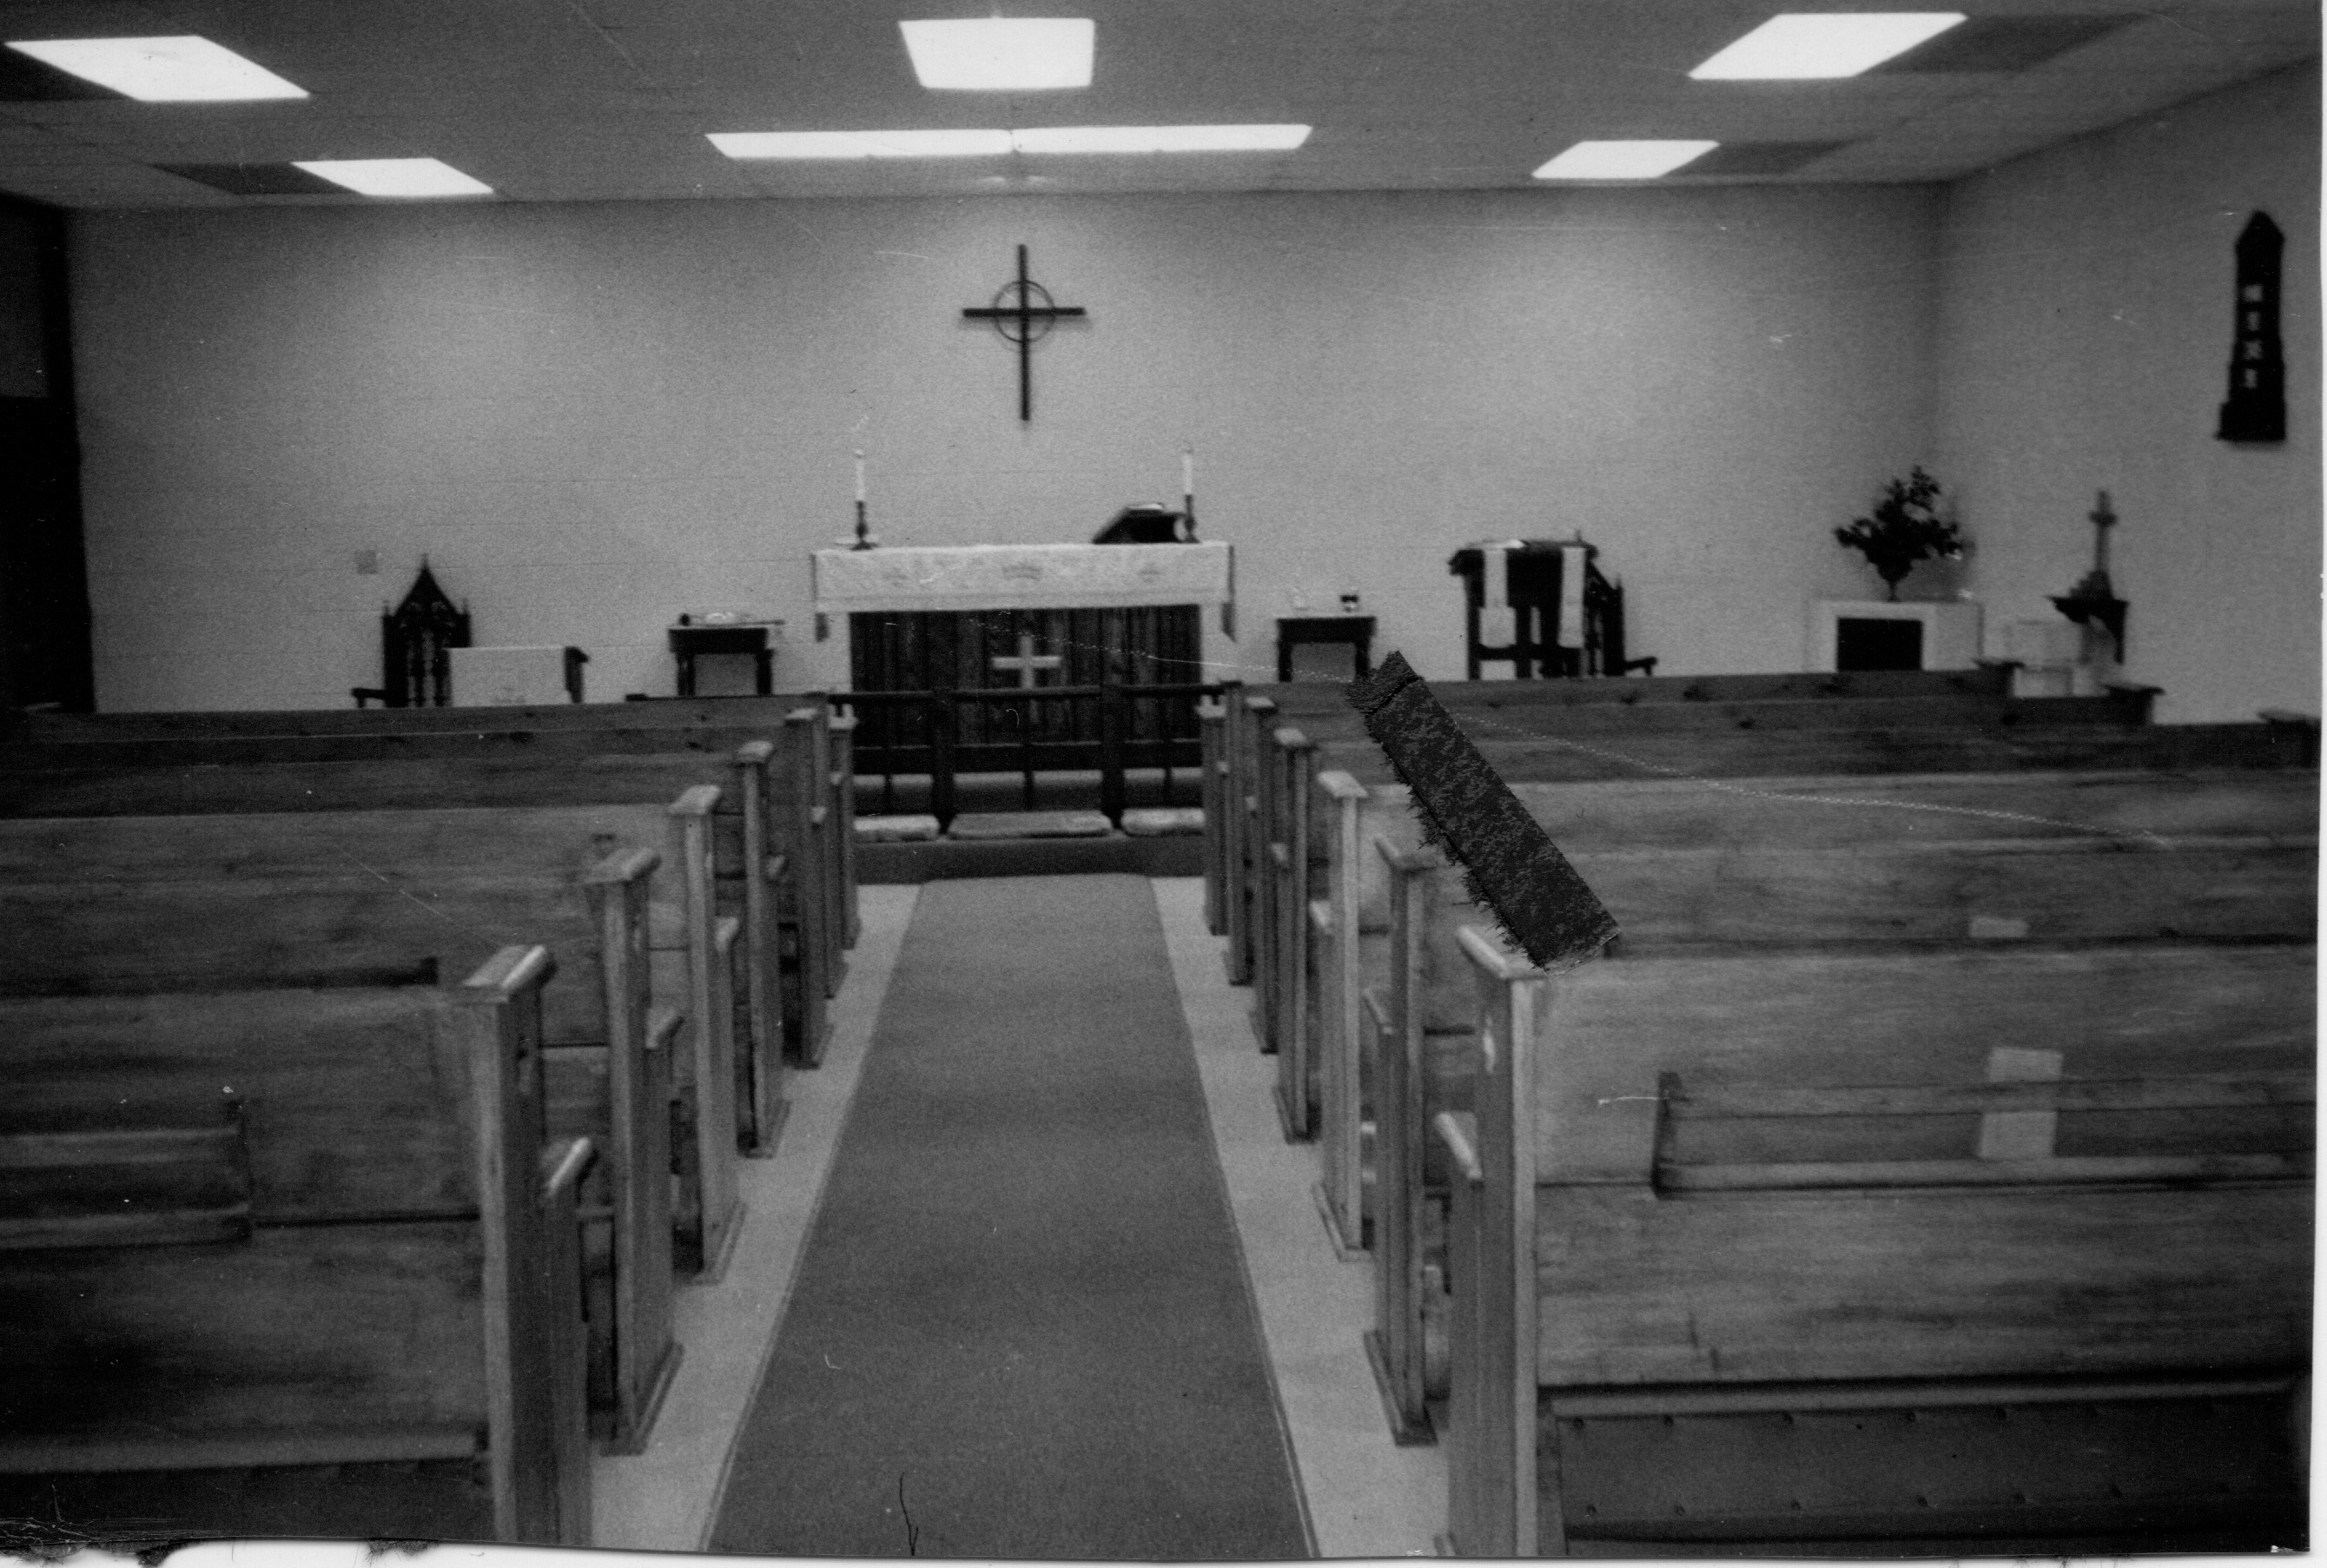 1970 - St. Stephen's Chapel